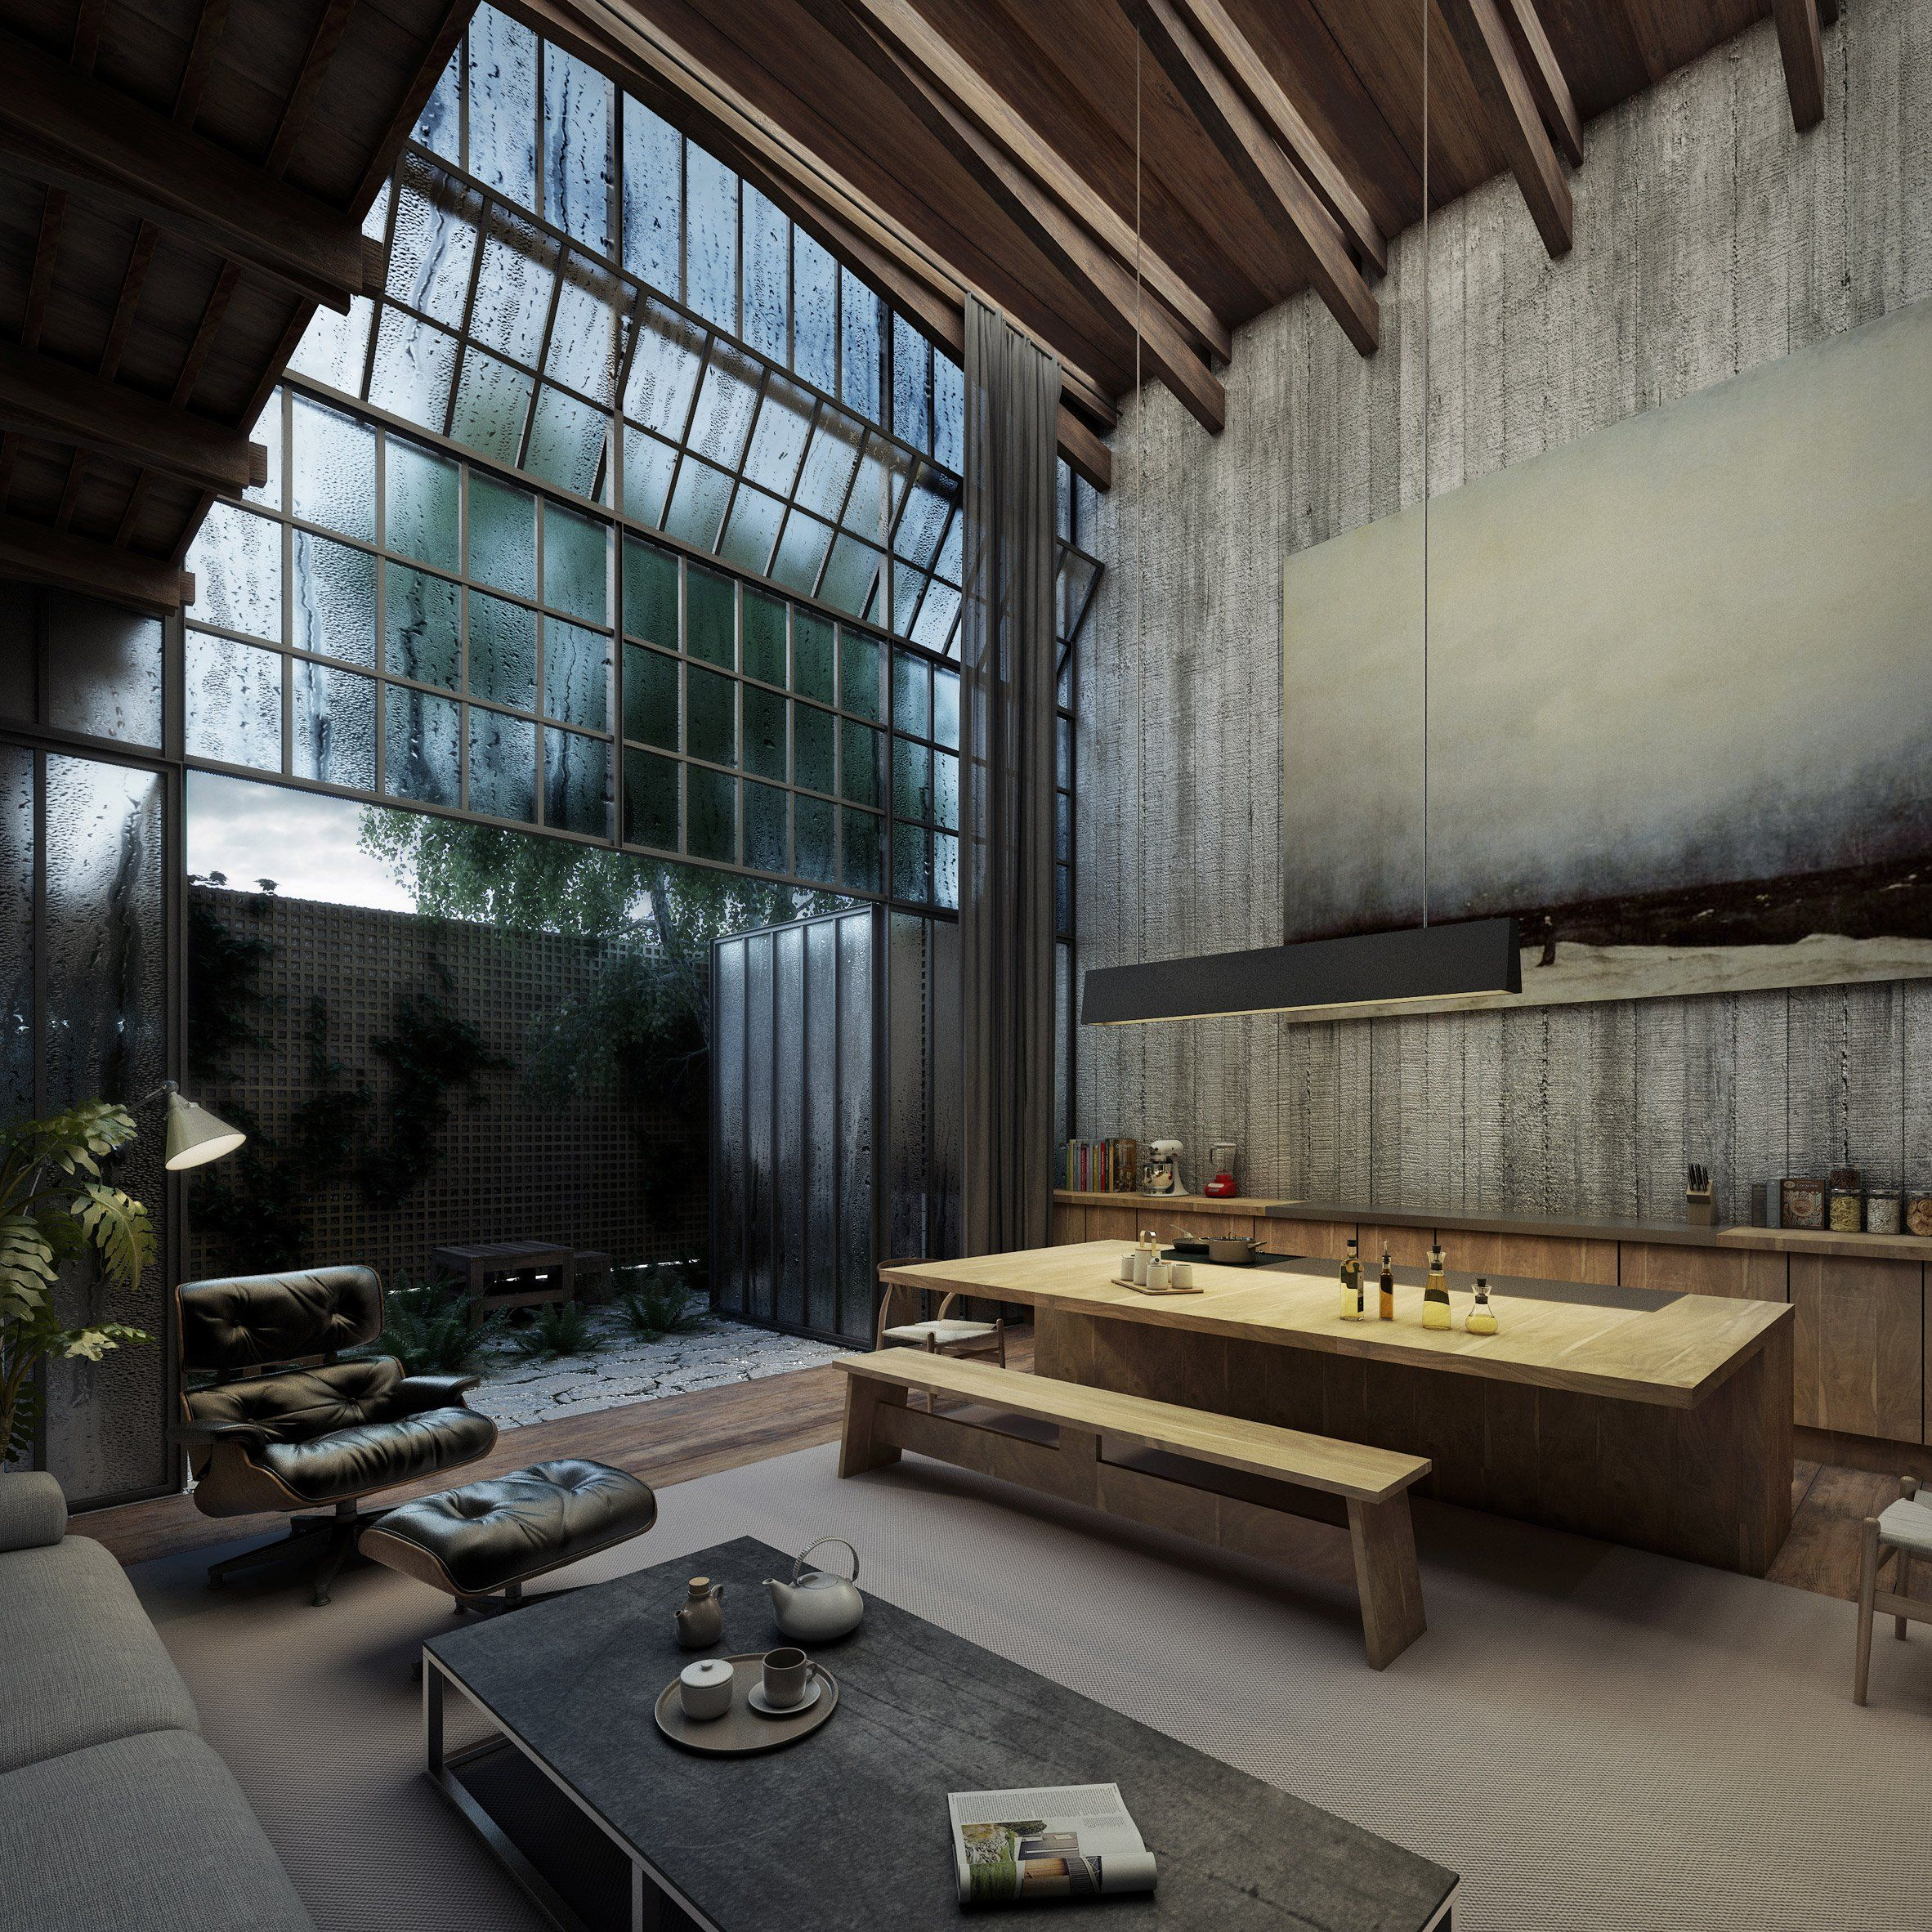 Industrial Kitchen Windows: These Renderings By Visualisation Studio VER Depict A